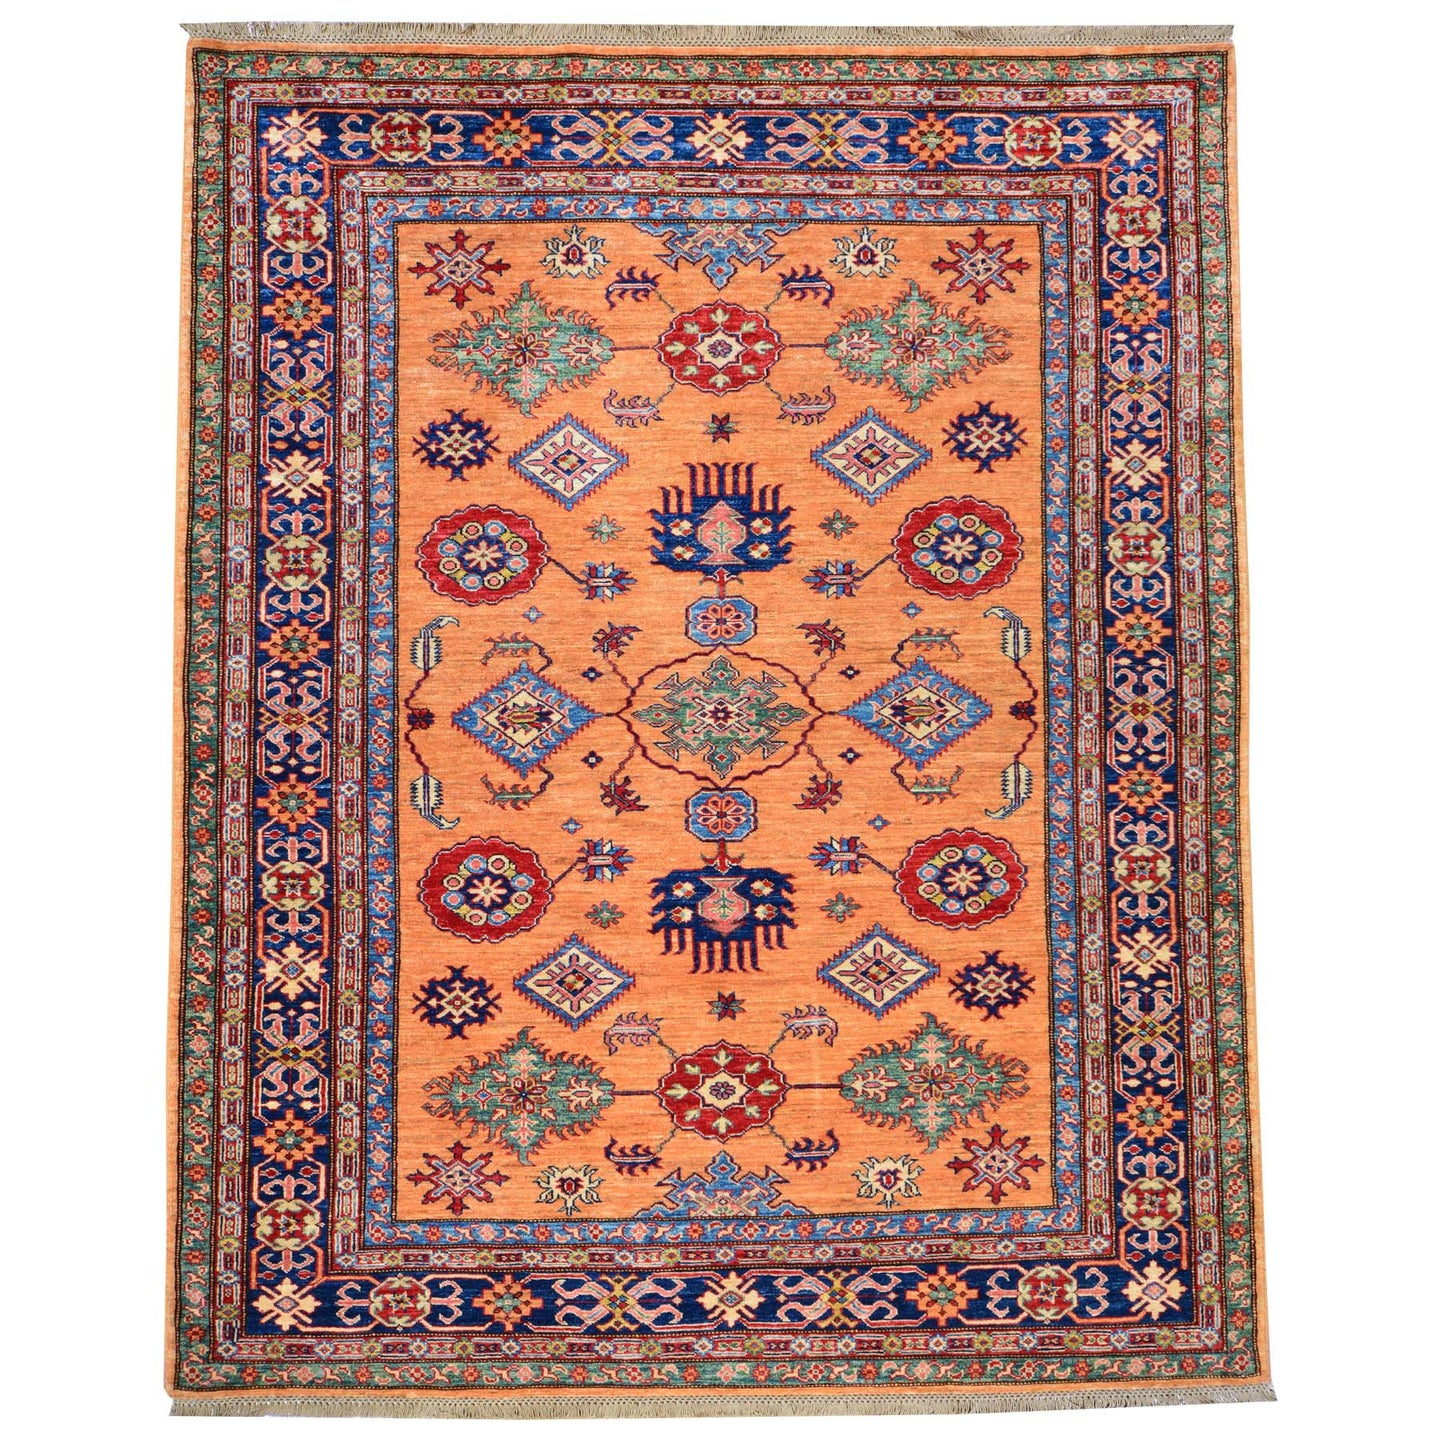 Oriental rugs, hand-knotted carpets, sustainable rugs, classic world oriental rugs, handmade, United States, interior design,  Brral-3939